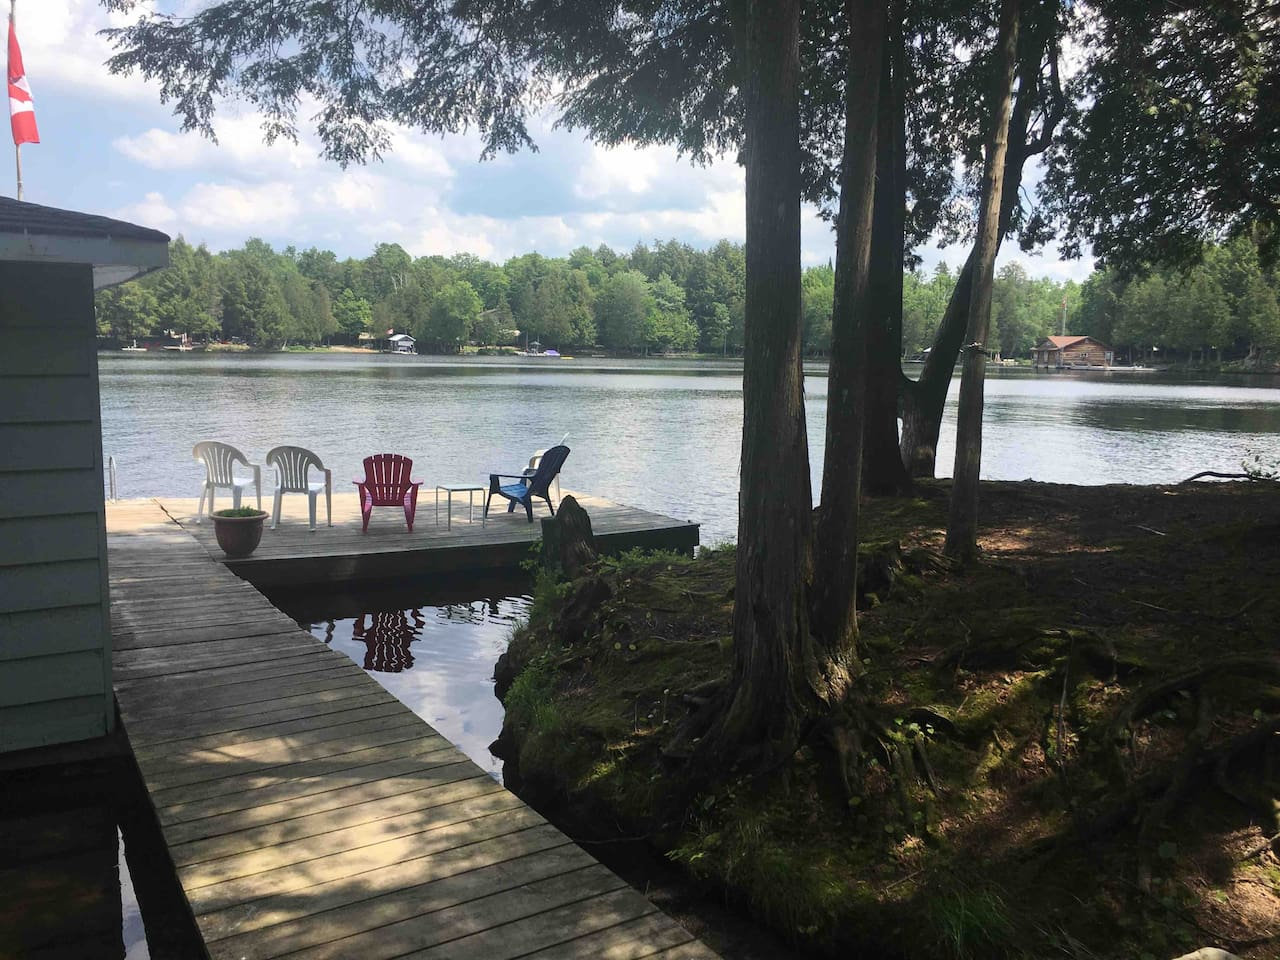 View of the dock with Muskoka chairs